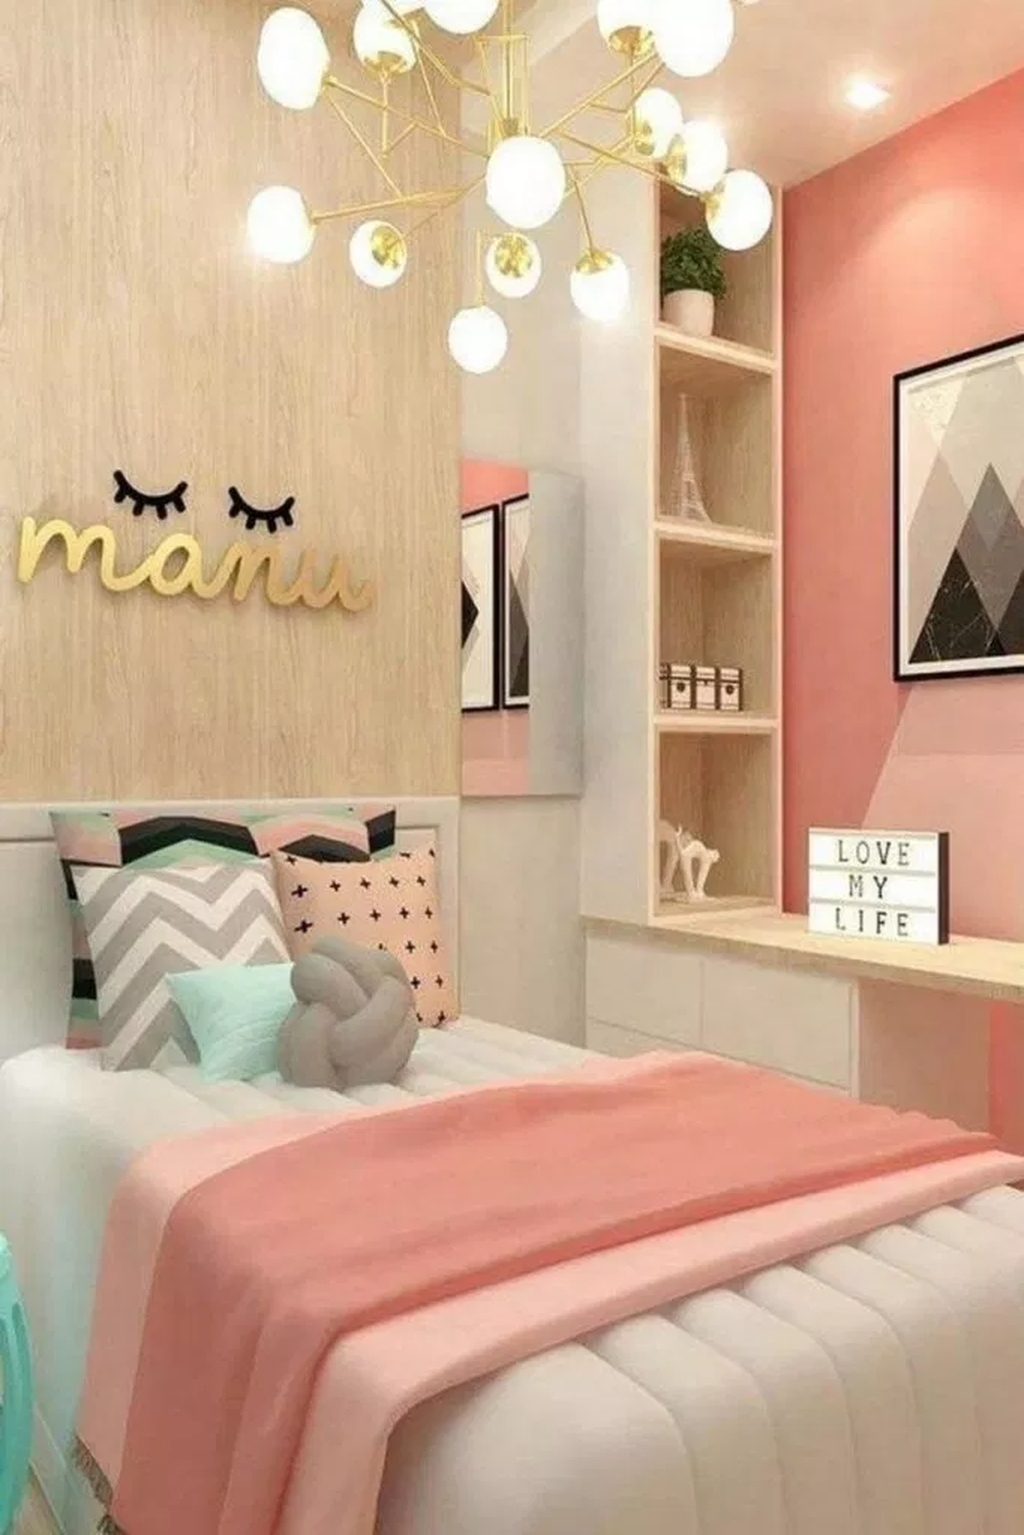 20+ Beautiful Girls Bedroom Ideas For Small Rooms To Try ... on Girls Bedroom Ideas For Small Rooms  id=70167